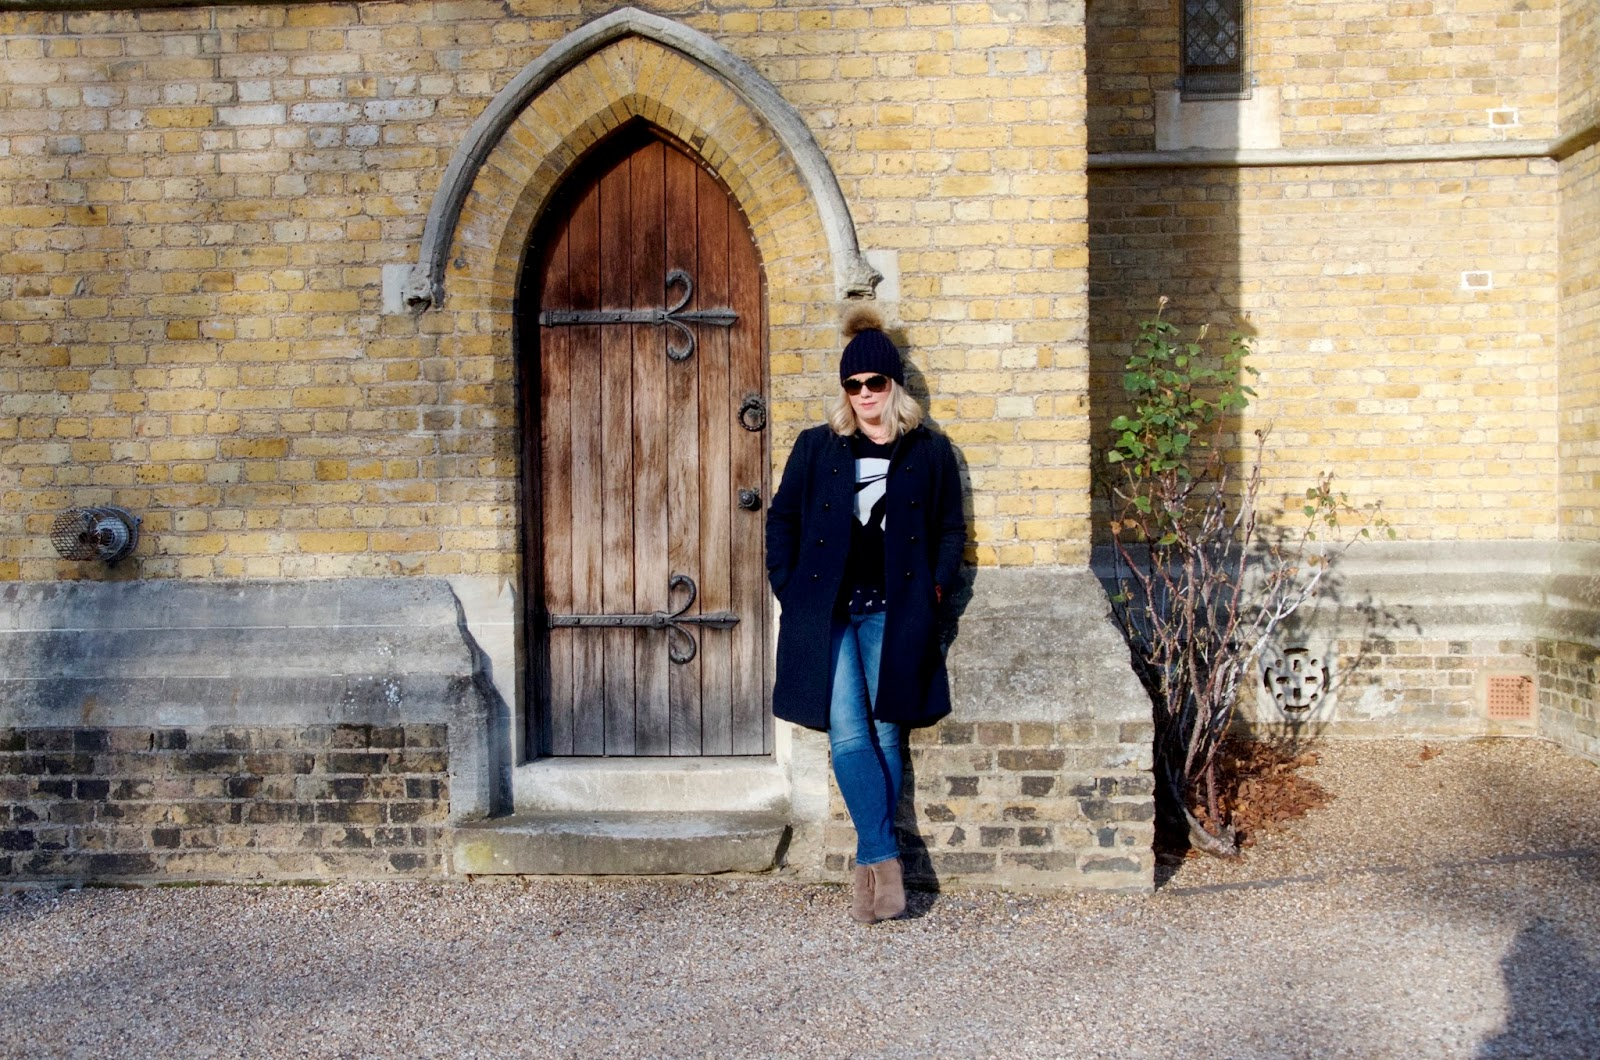 Church door, tree and navy blue coat